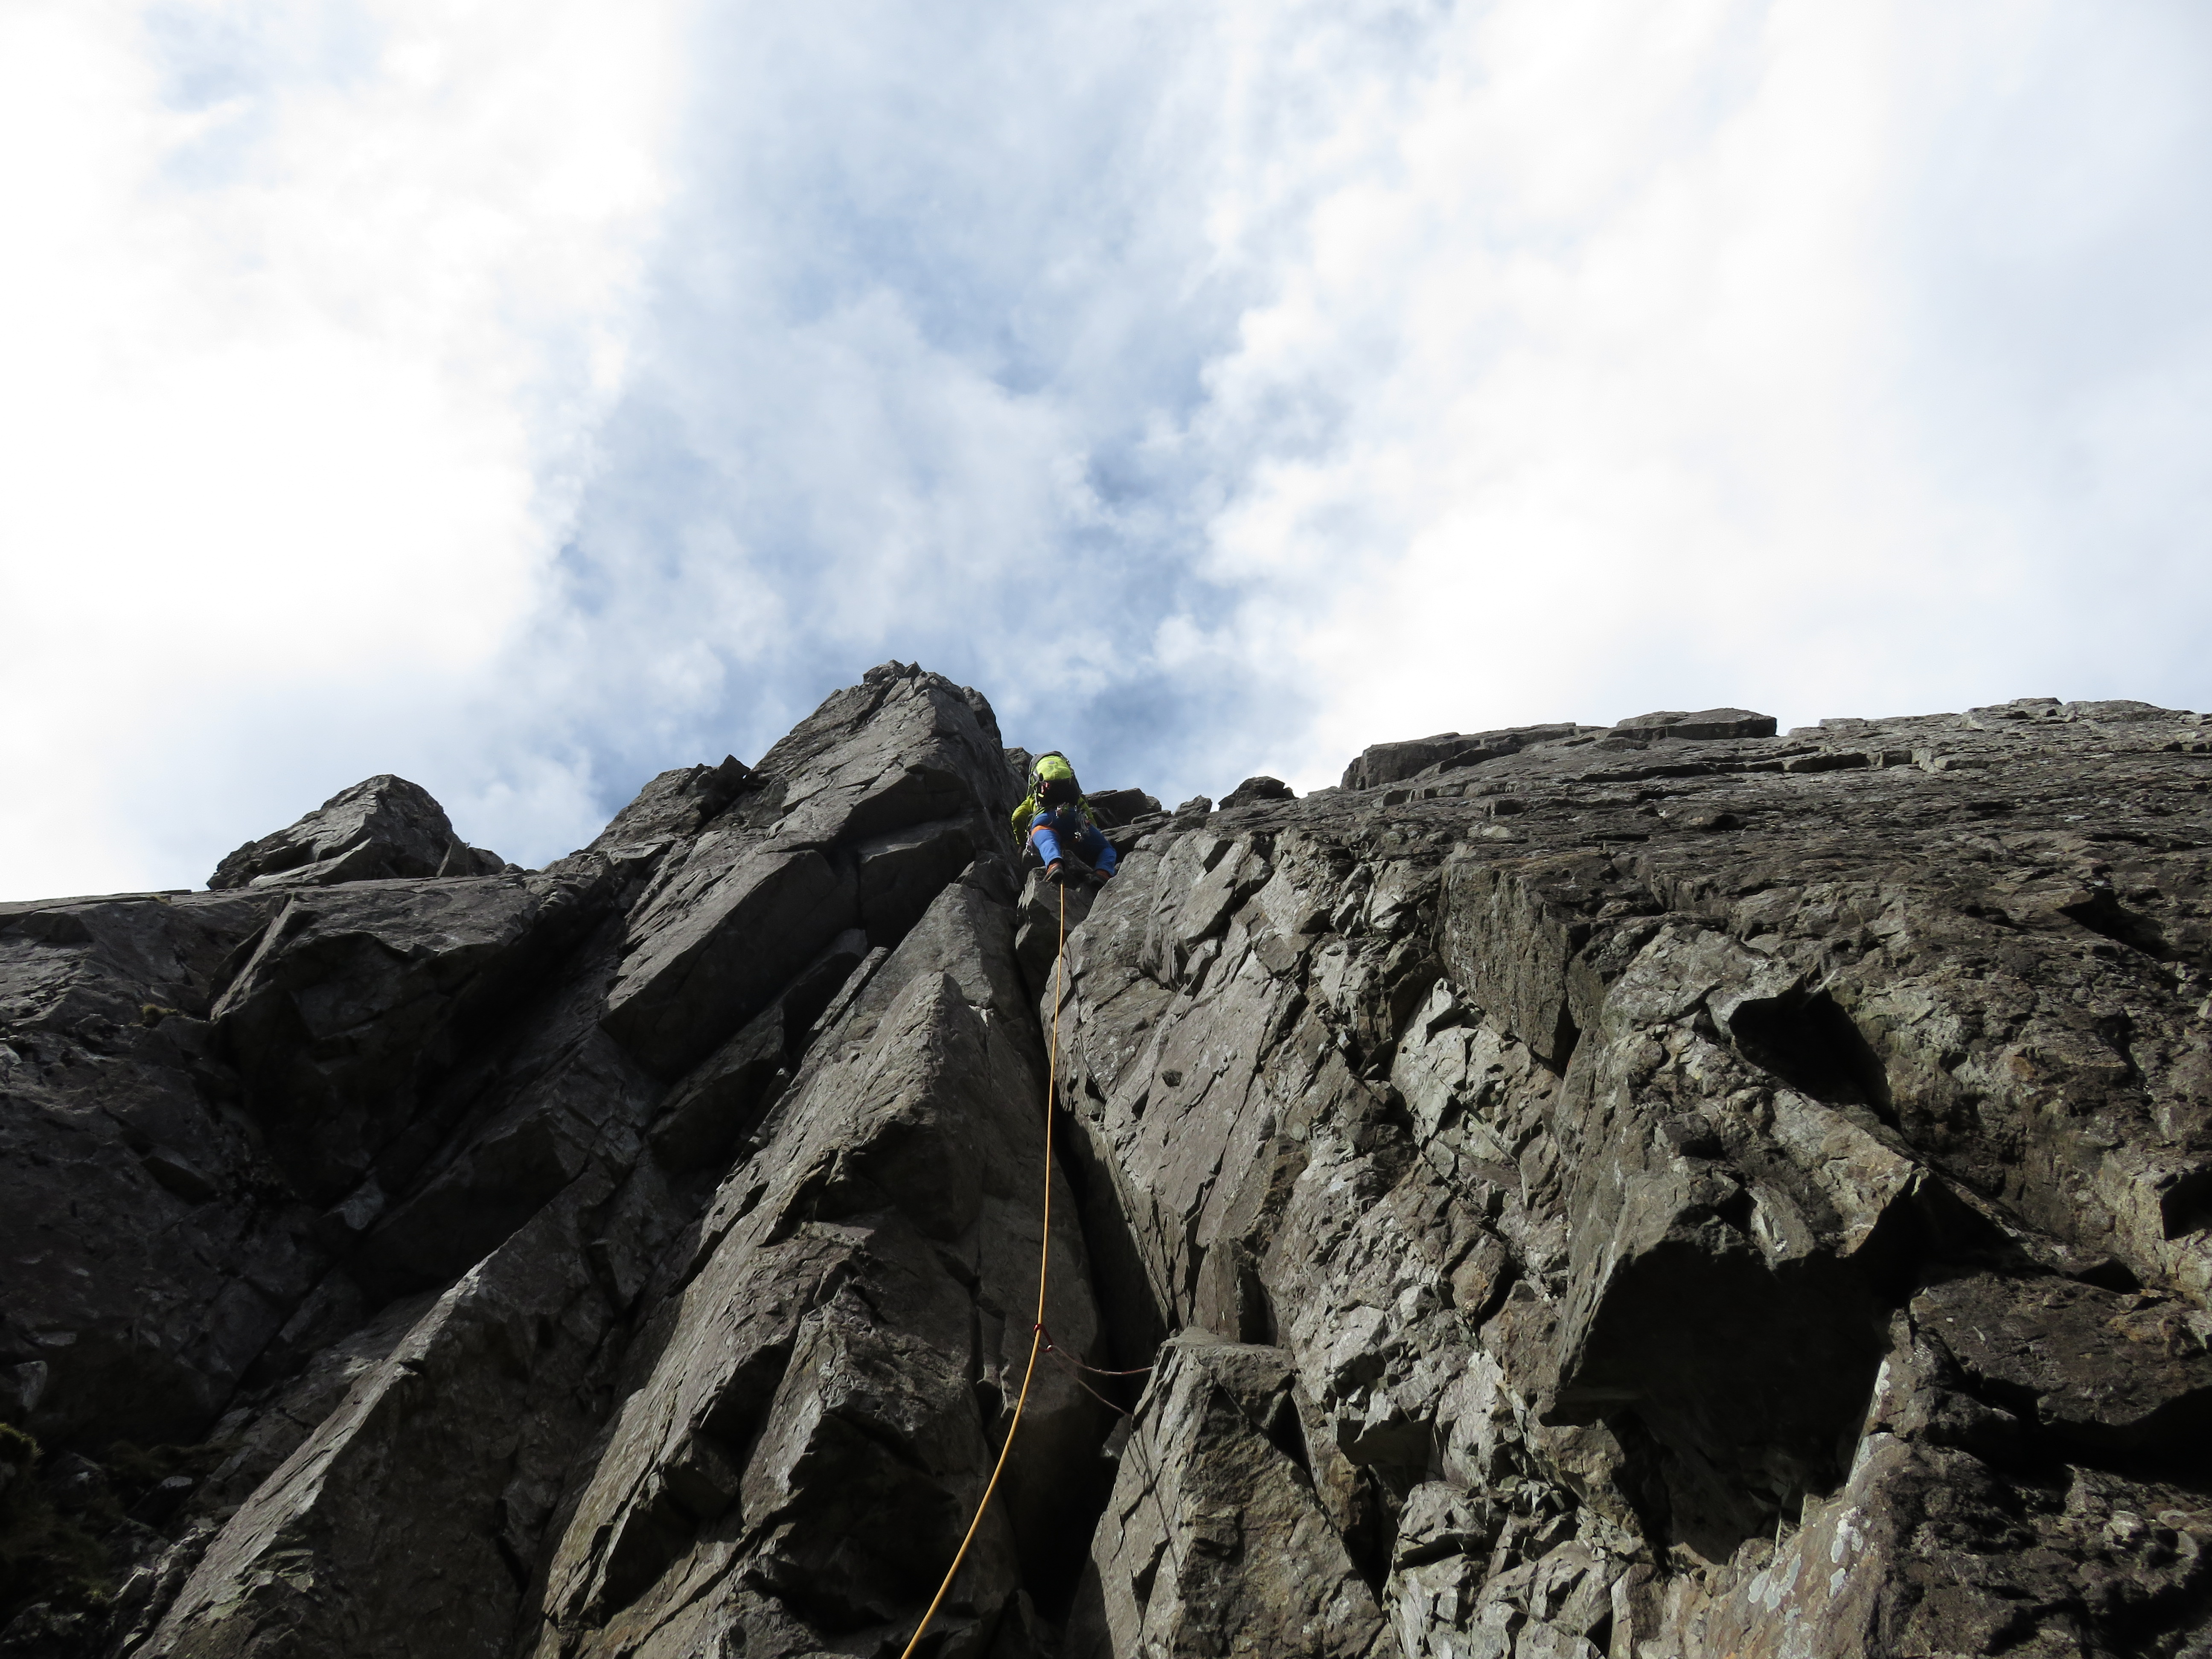 Complete the Cuillin Ridge Traverse with Lochaber Guides. A qualified, experienced Skye Cuillin Ridge Traverse Guide will help you on this challenge.